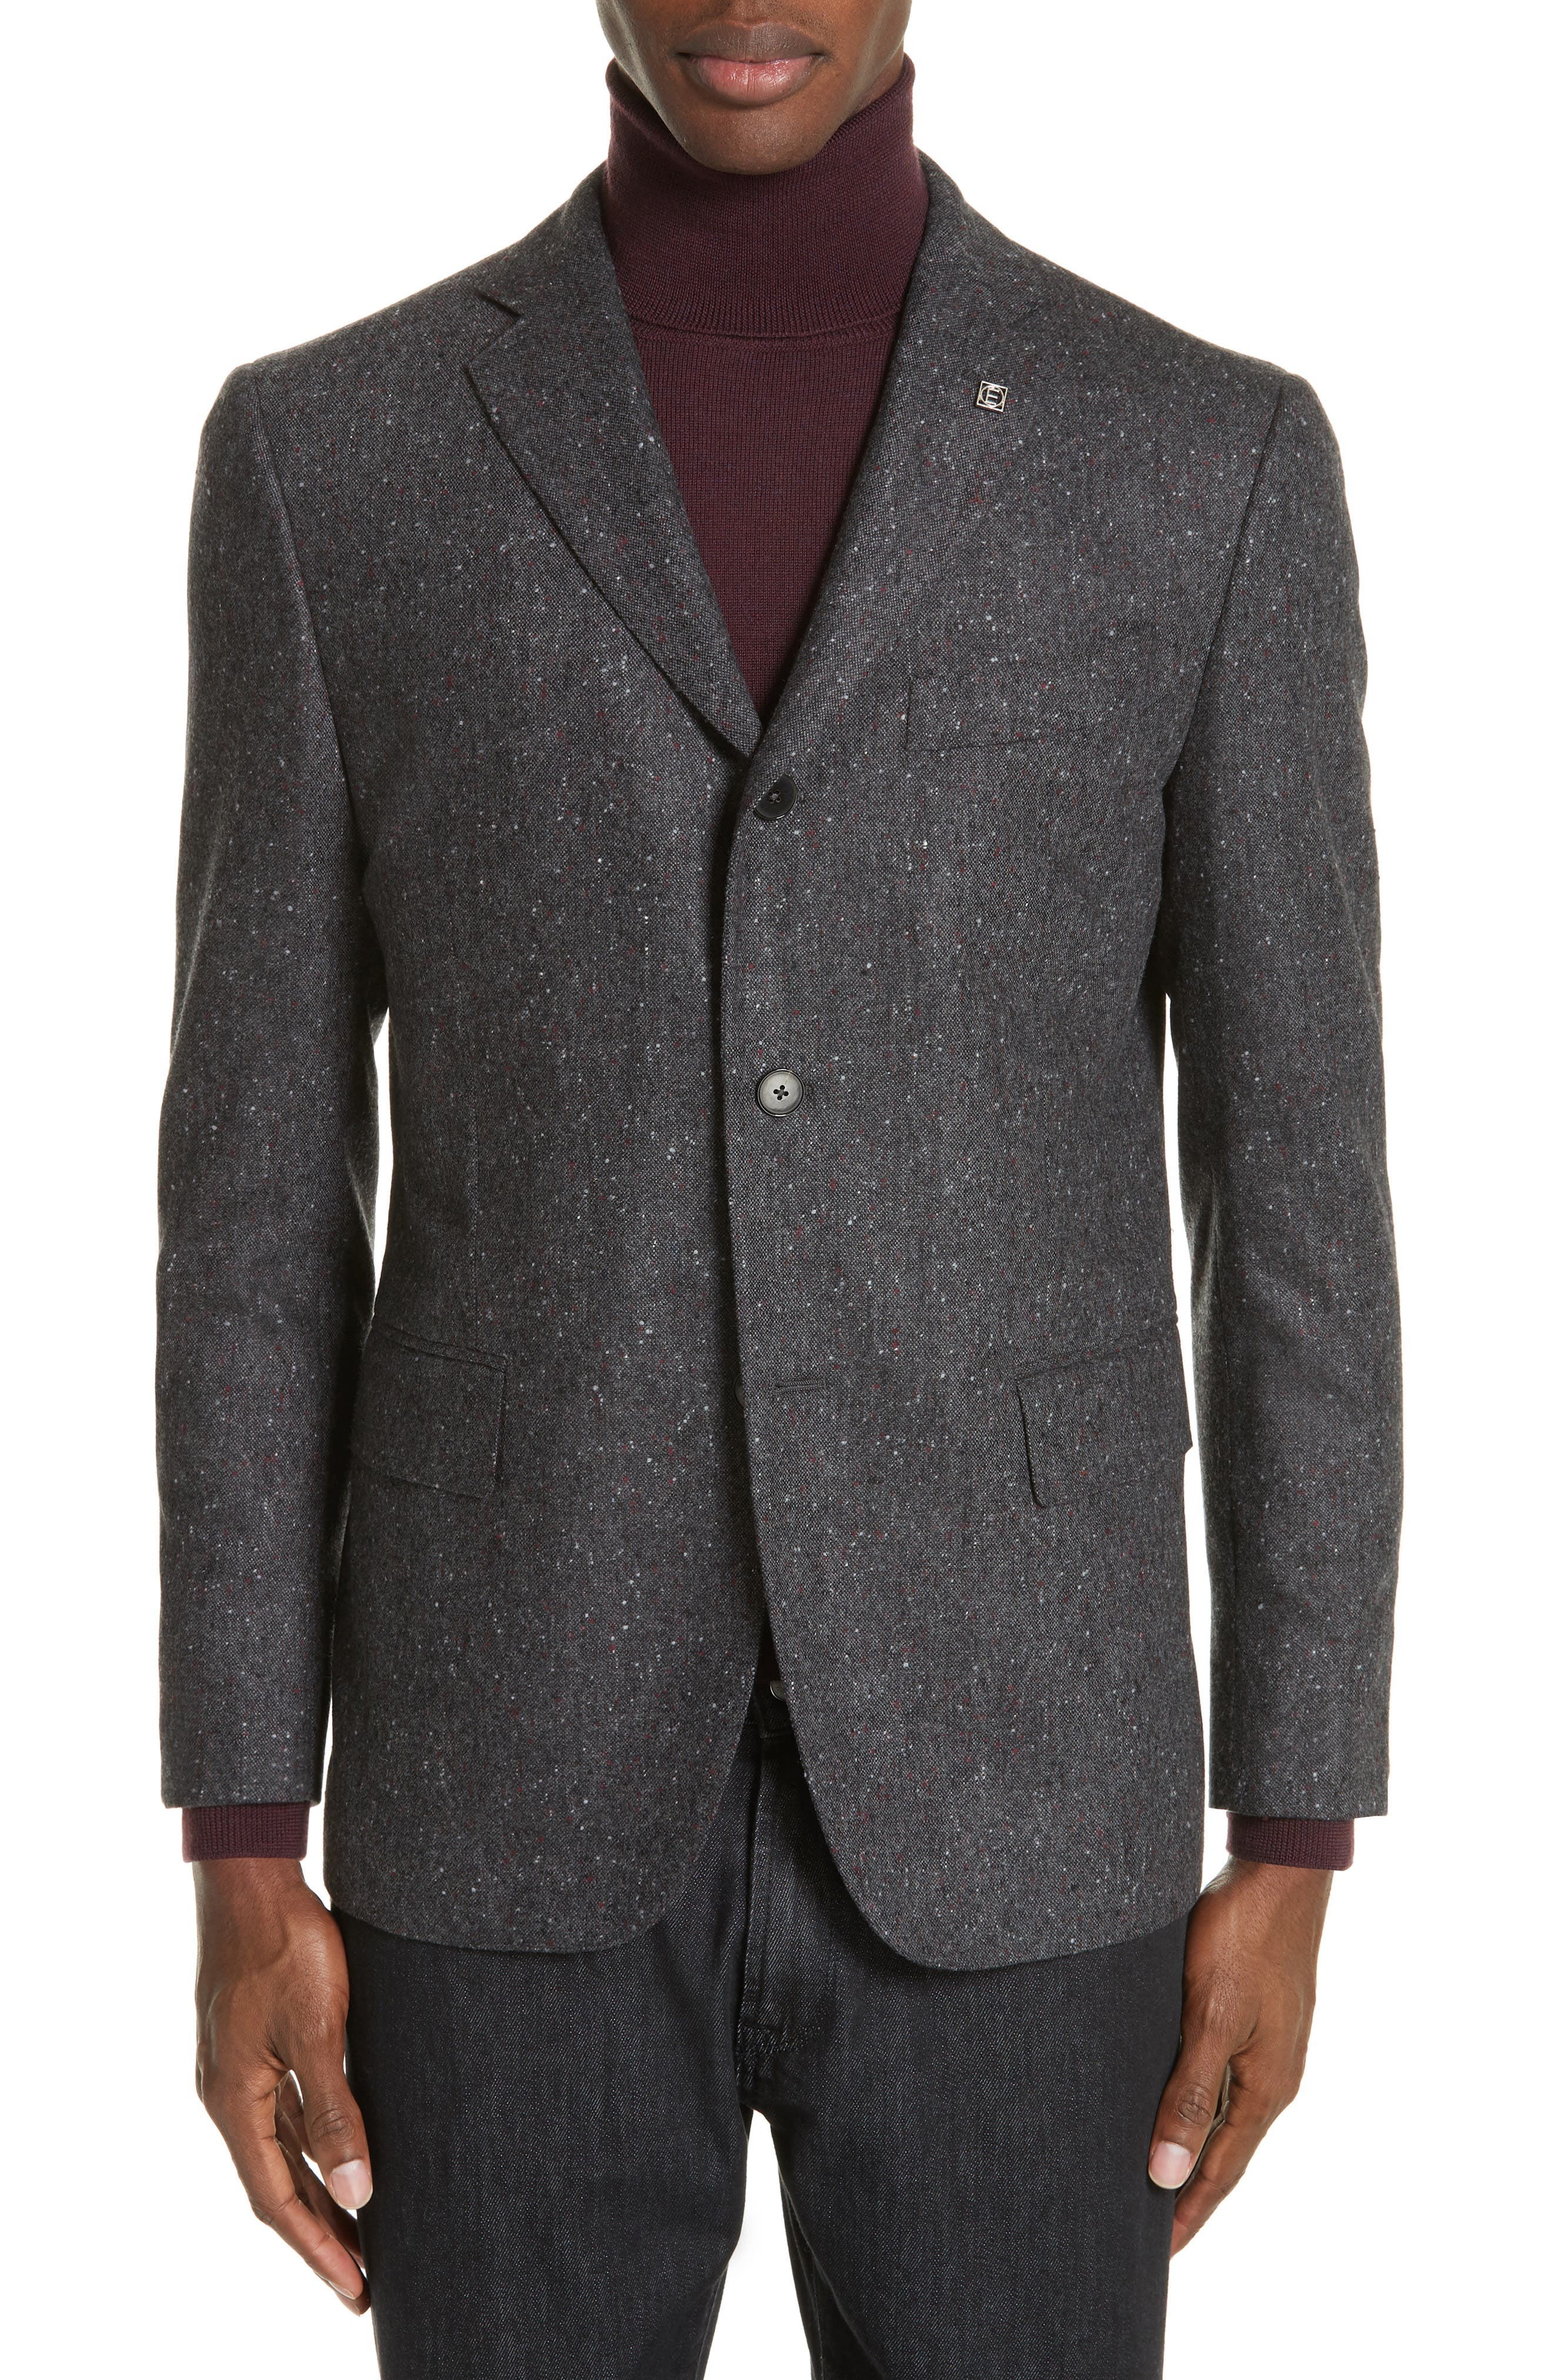 EIDOS Trim Fit Three Button Wool Blazer in Grey/ Red